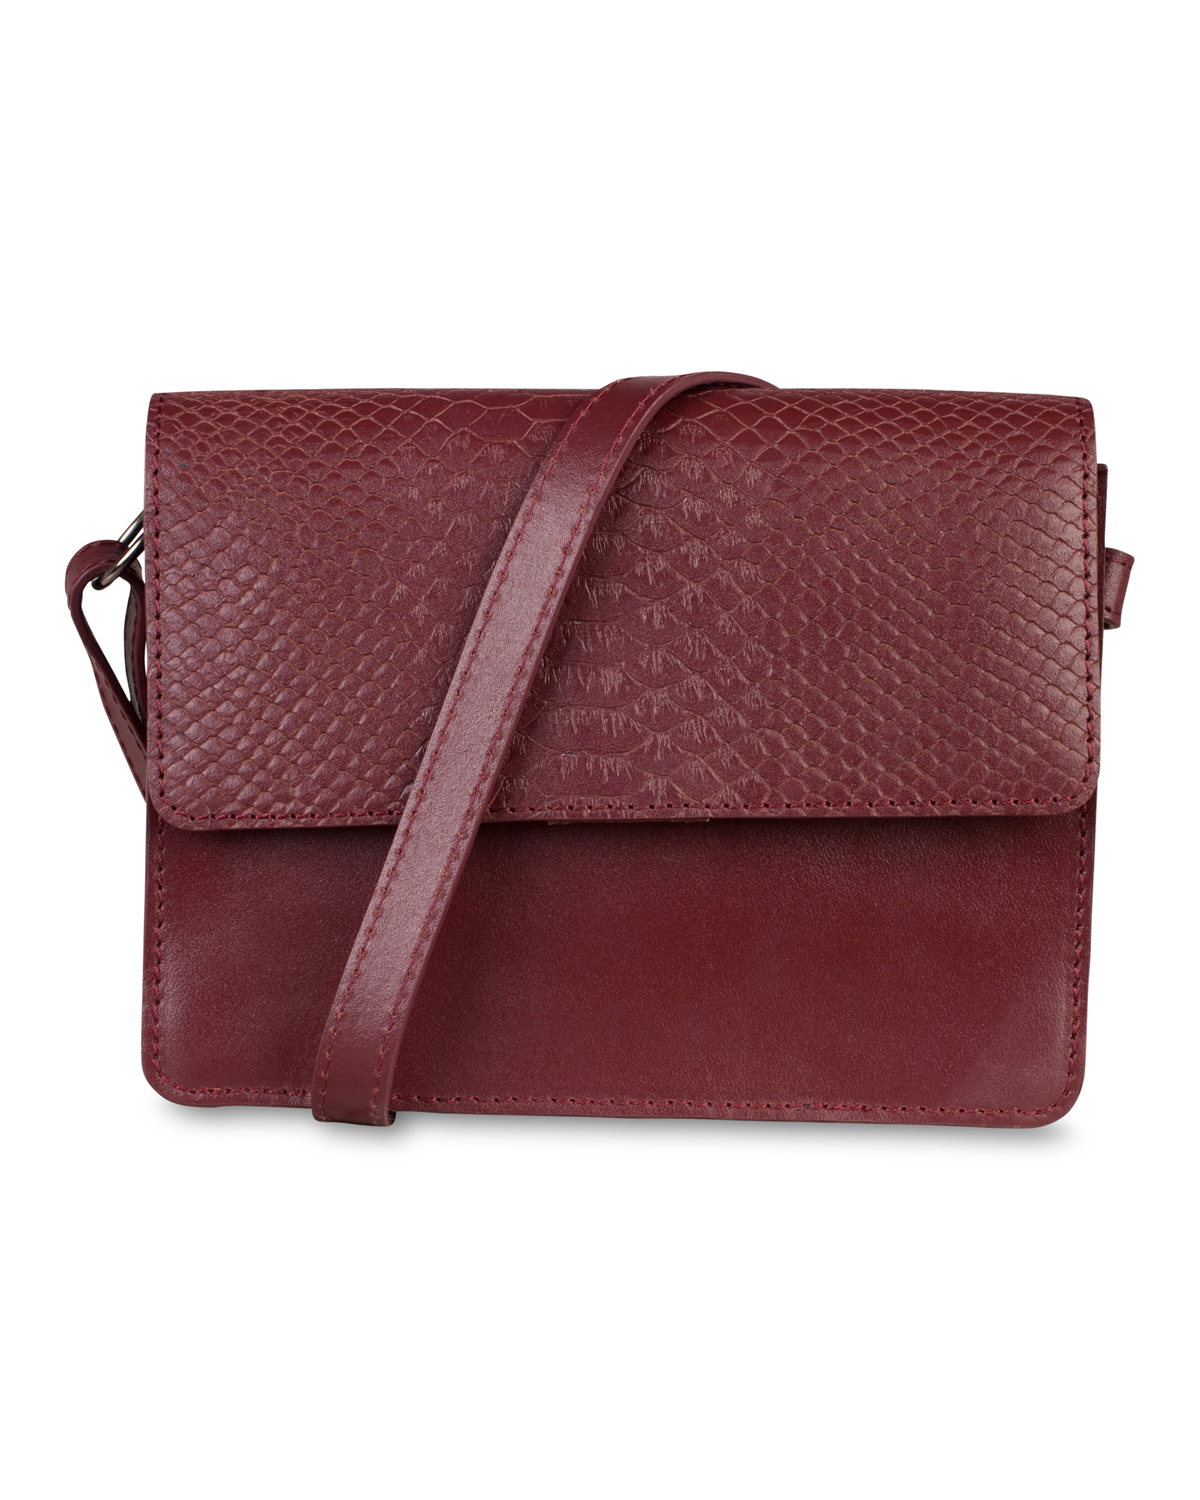 Dames leather croco detail tas